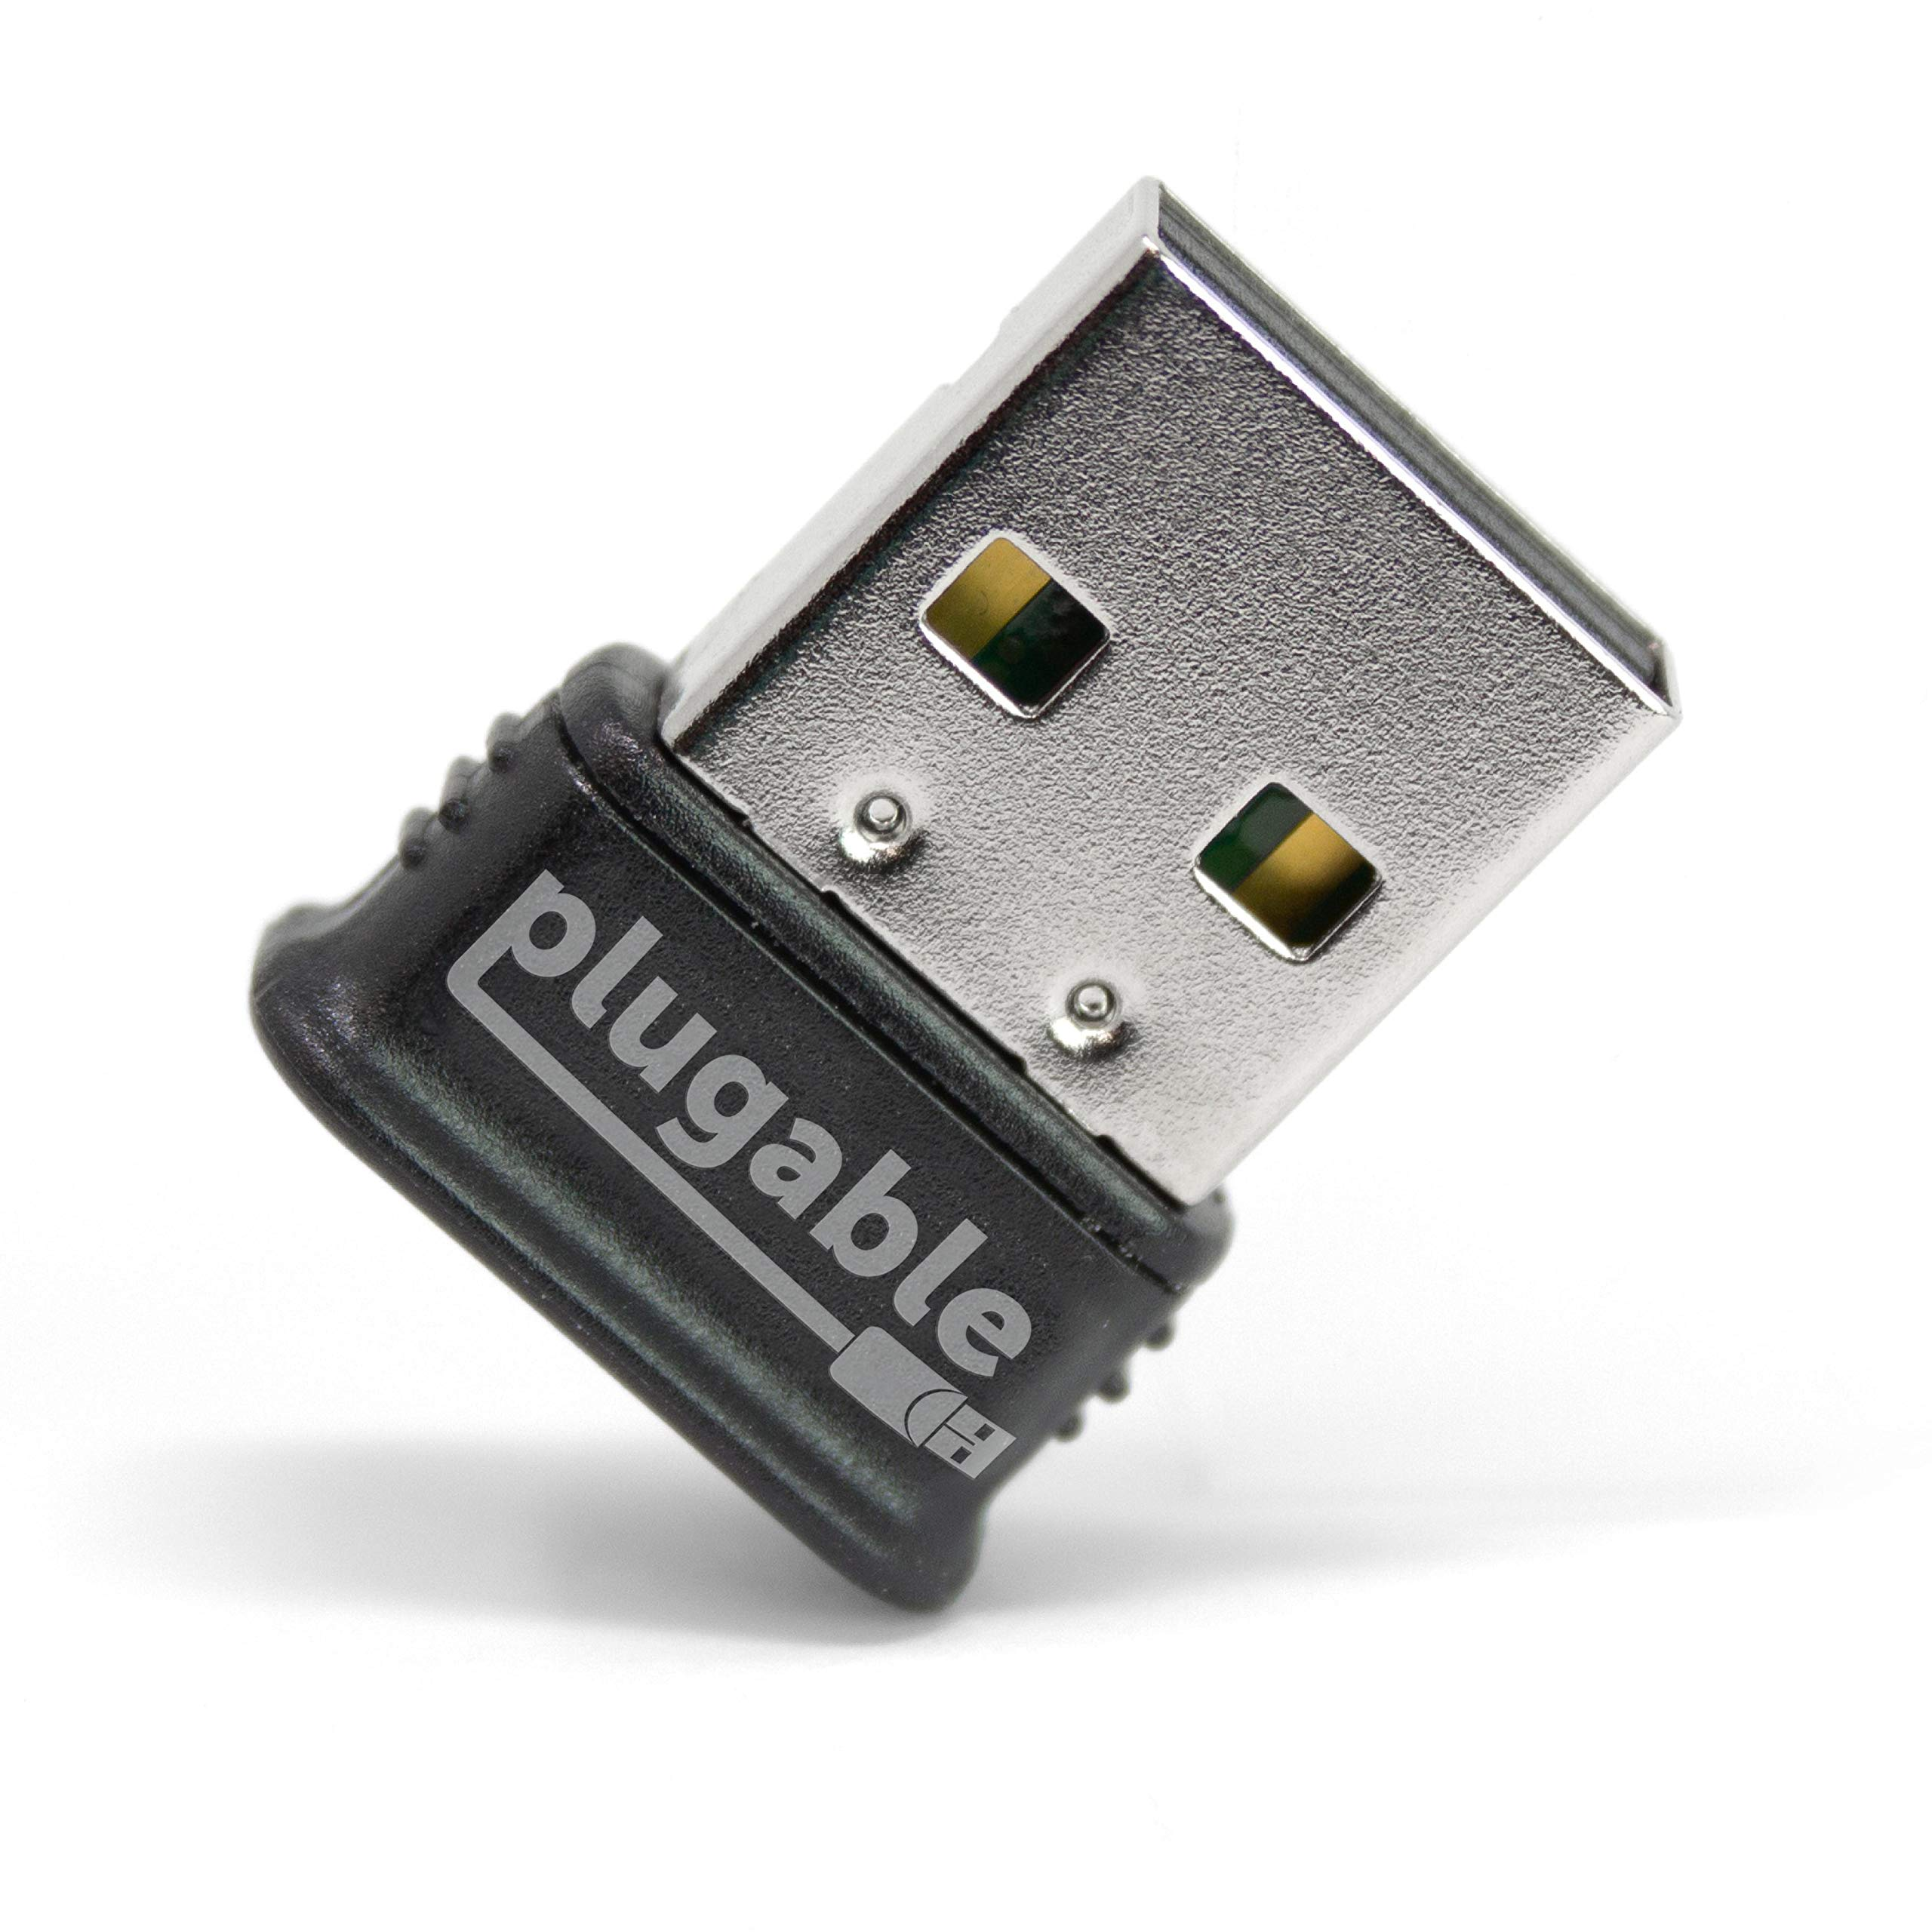 Plugable USB Bluetooth 4.0 Low Energy Micro Adapter (Compatible with Windows 10, 8.1, 8, 7, Raspberry Pi, Linux Compatible, Classic Bluetooth, and Stereo Headset Compatible) by Plugable